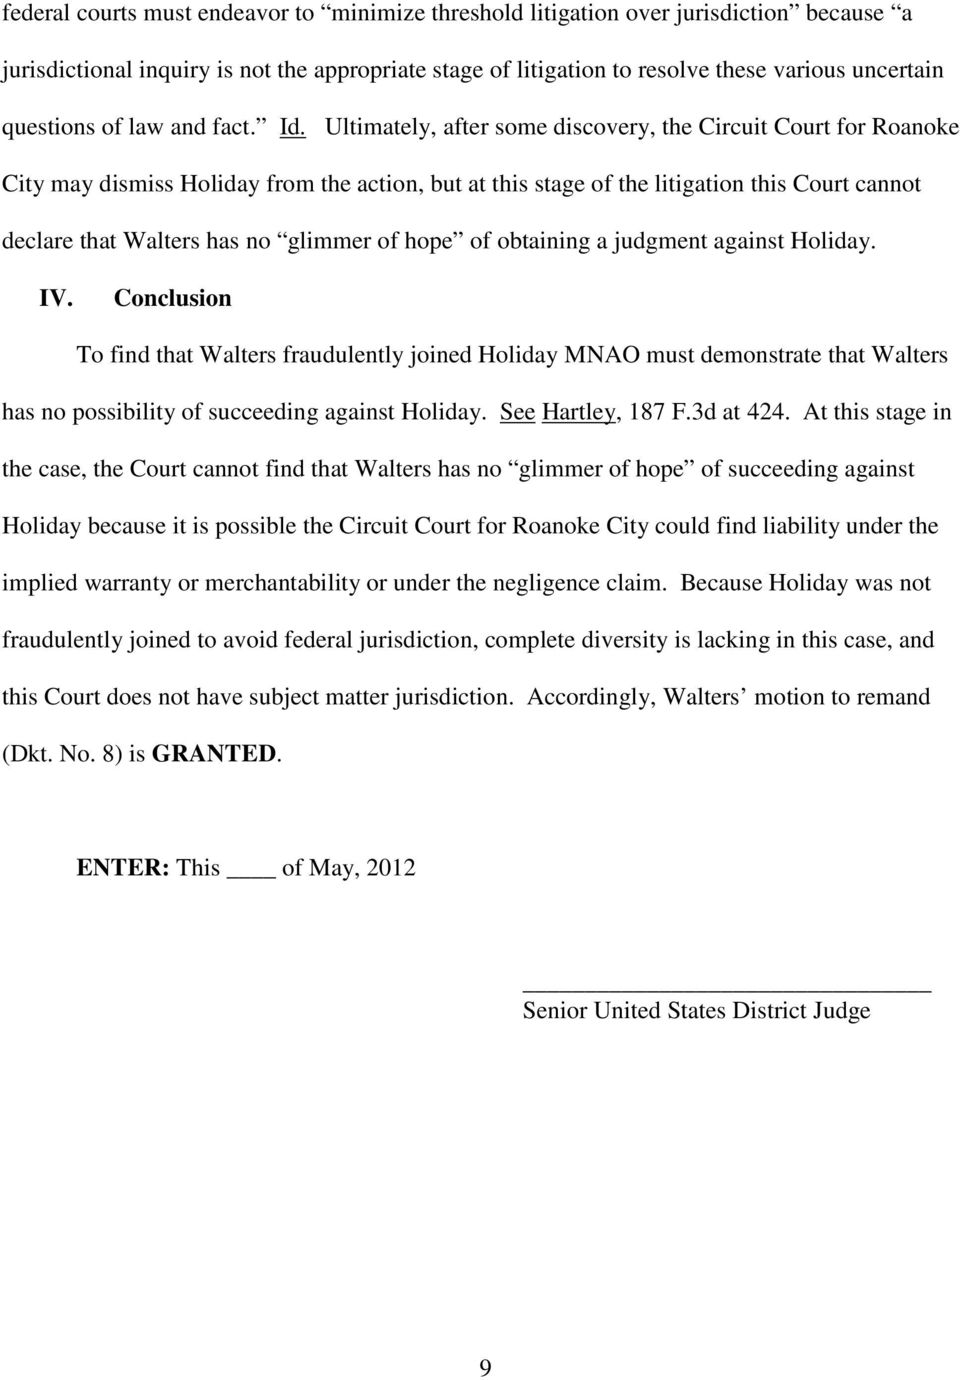 Ultimately, after some discovery, the Circuit Court for Roanoke City may dismiss Holiday from the action, but at this stage of the litigation this Court cannot declare that Walters has no glimmer of